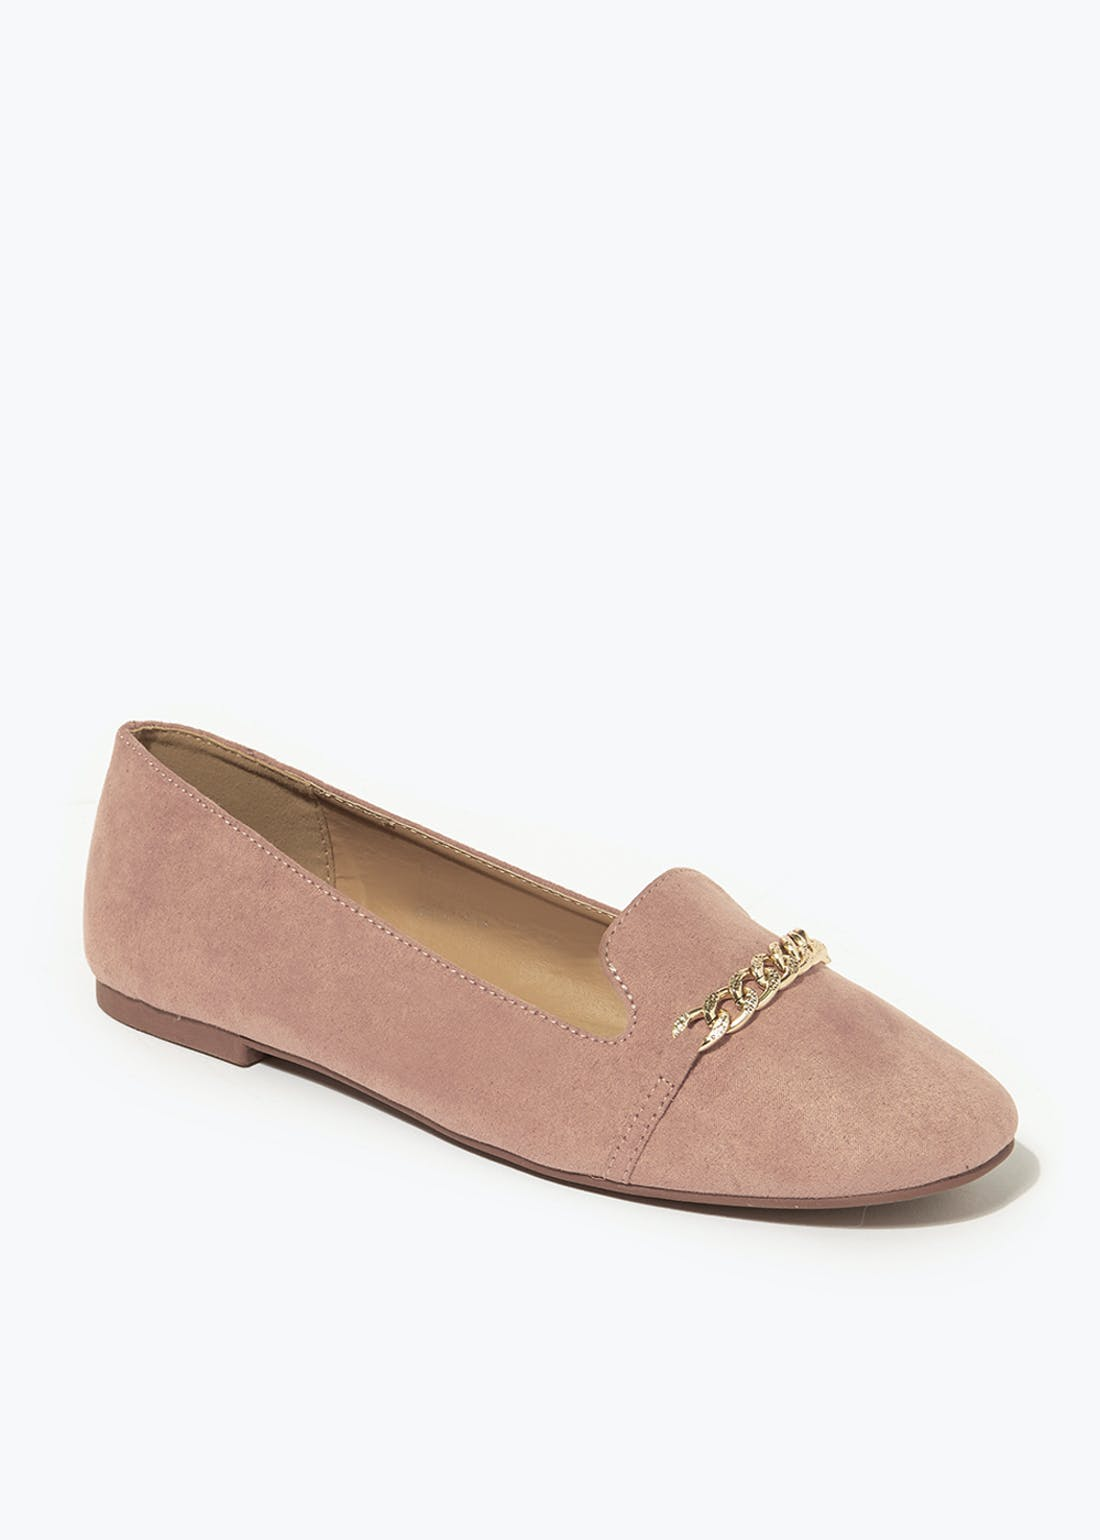 Blush Pink Chain Loafers